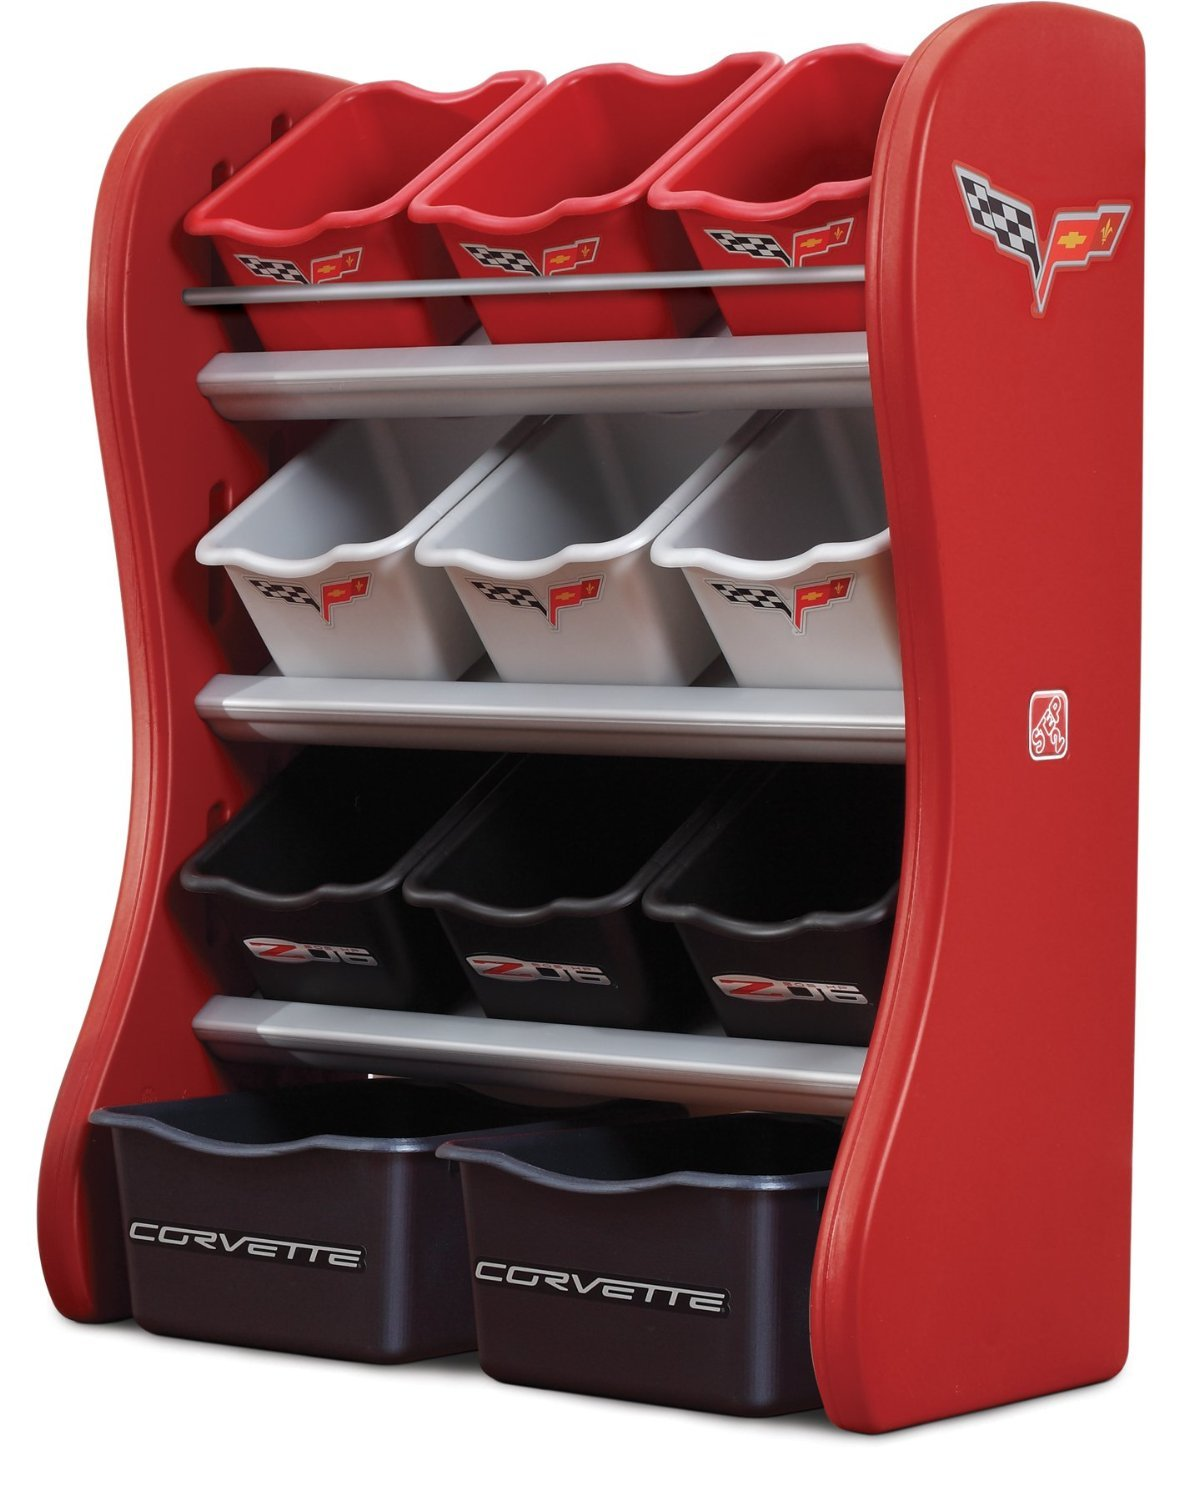 all-plastic toy organizer with larger bins